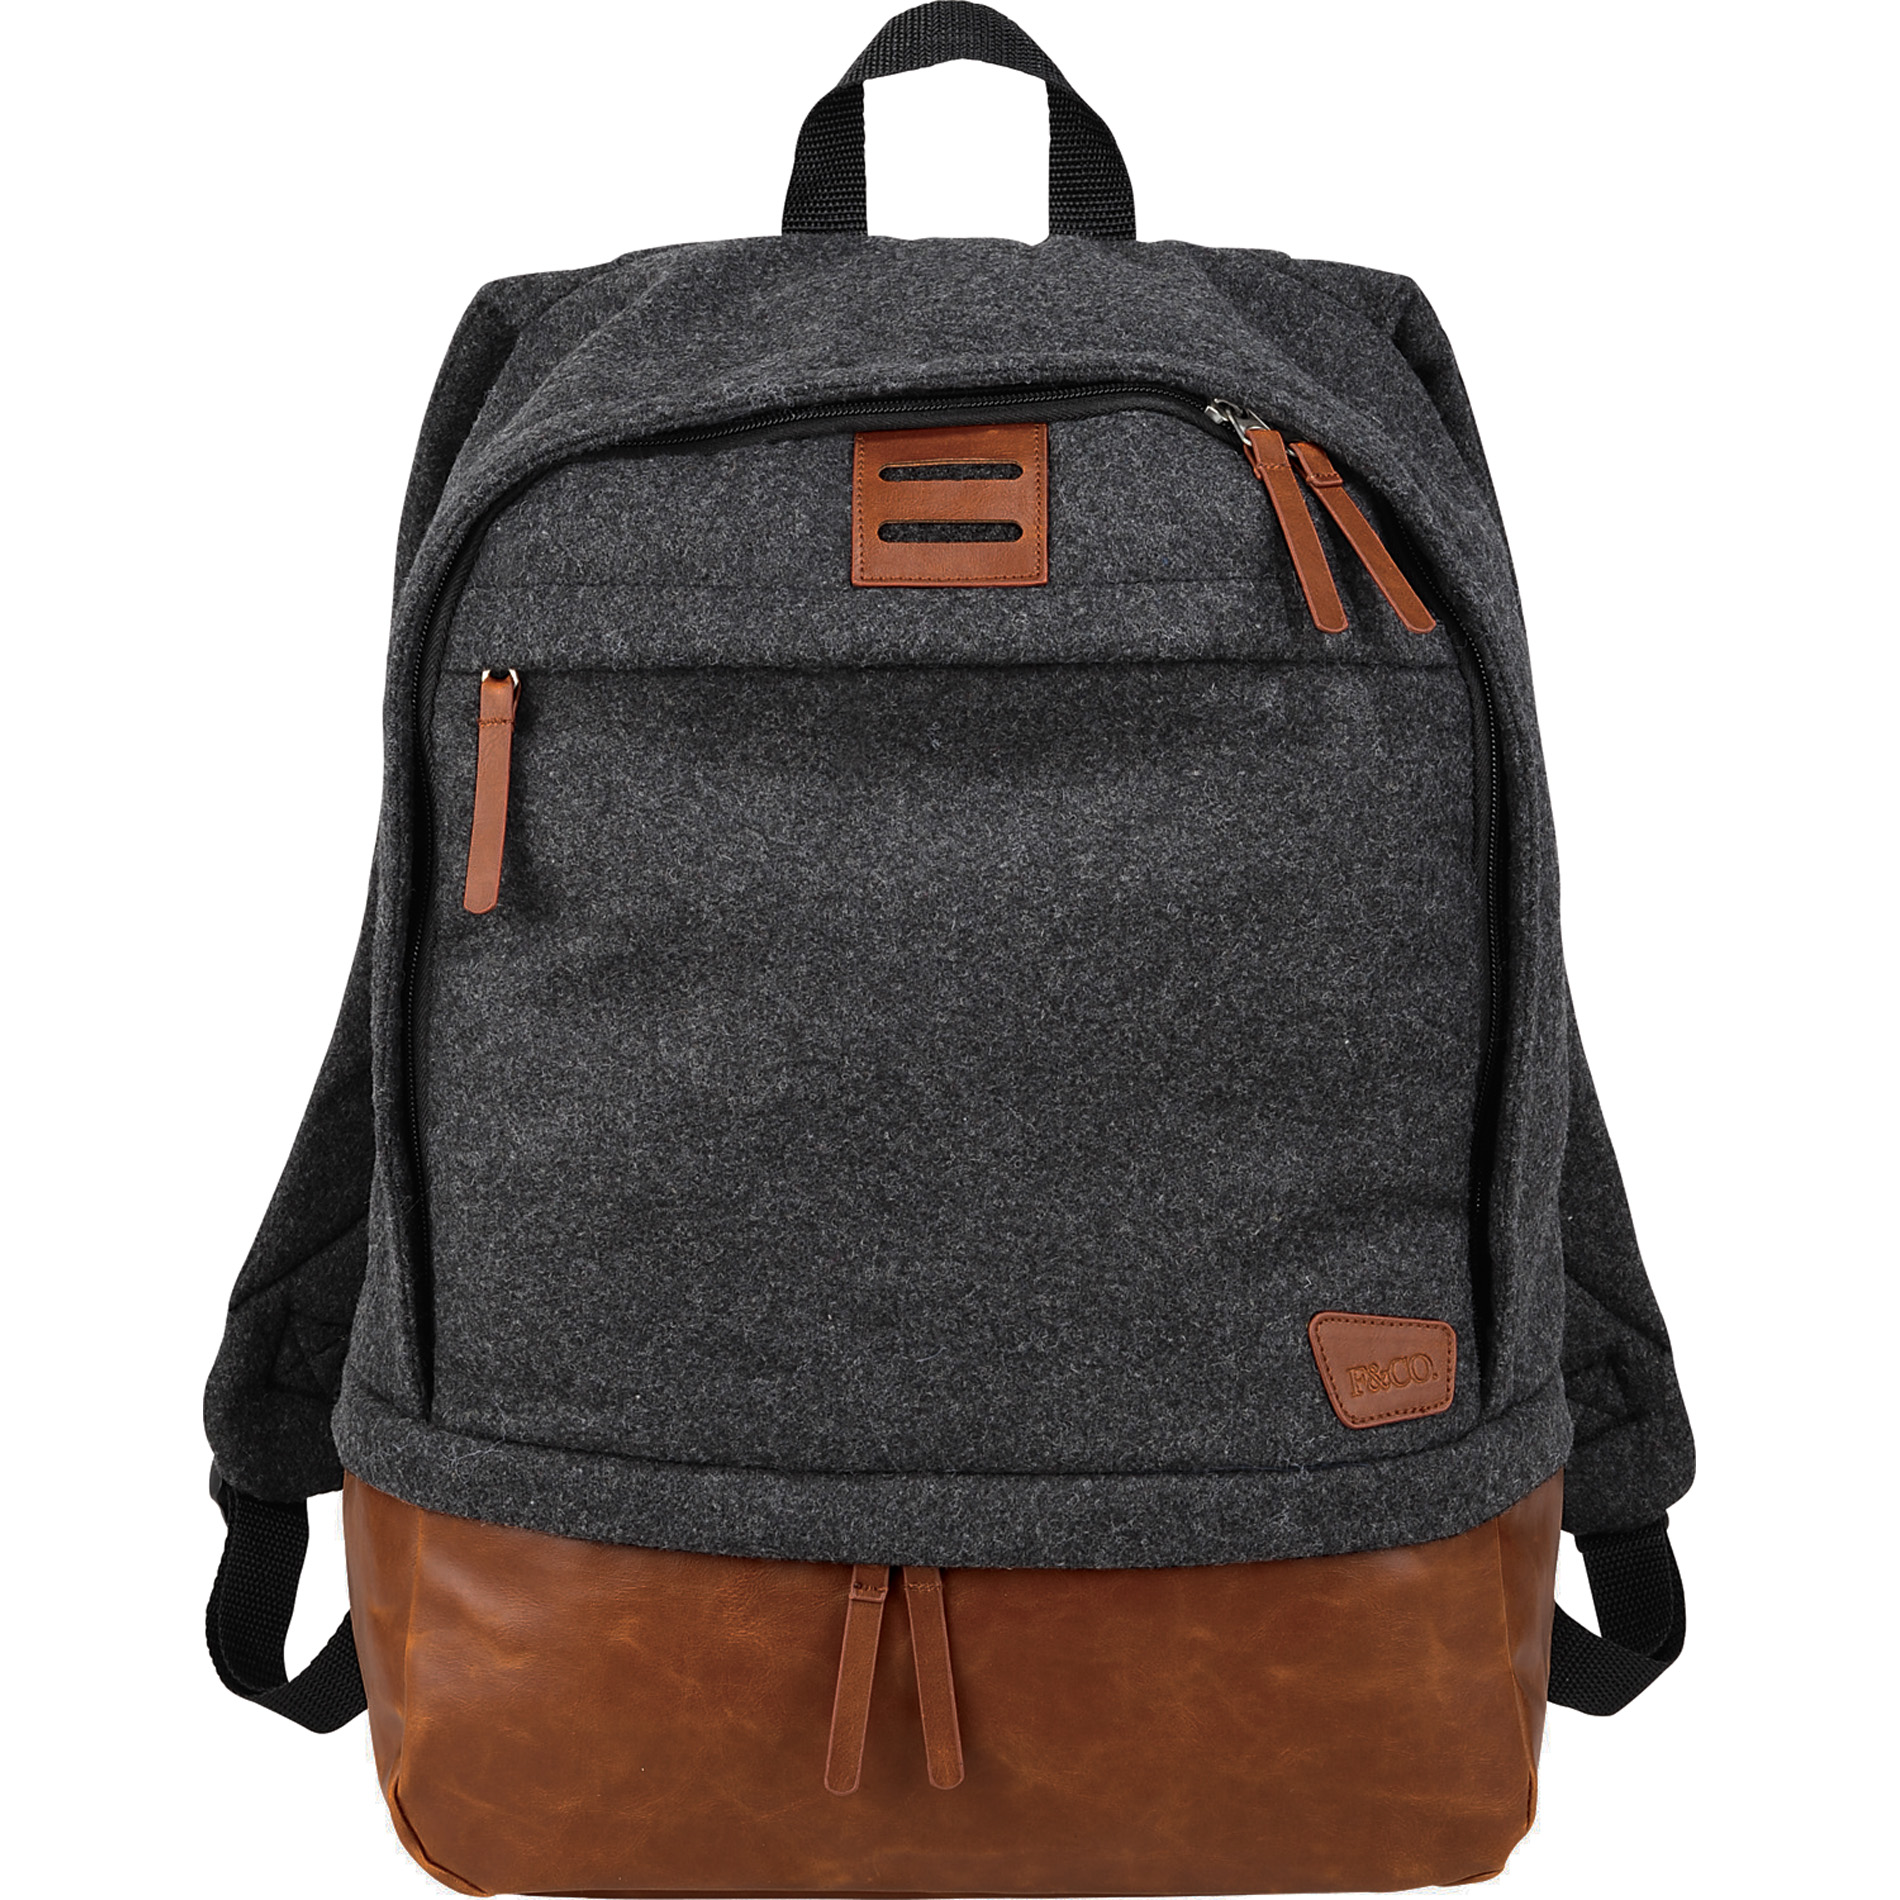 "Field & Co. 7950-71 - Campster Wool 15"" Computer ..."